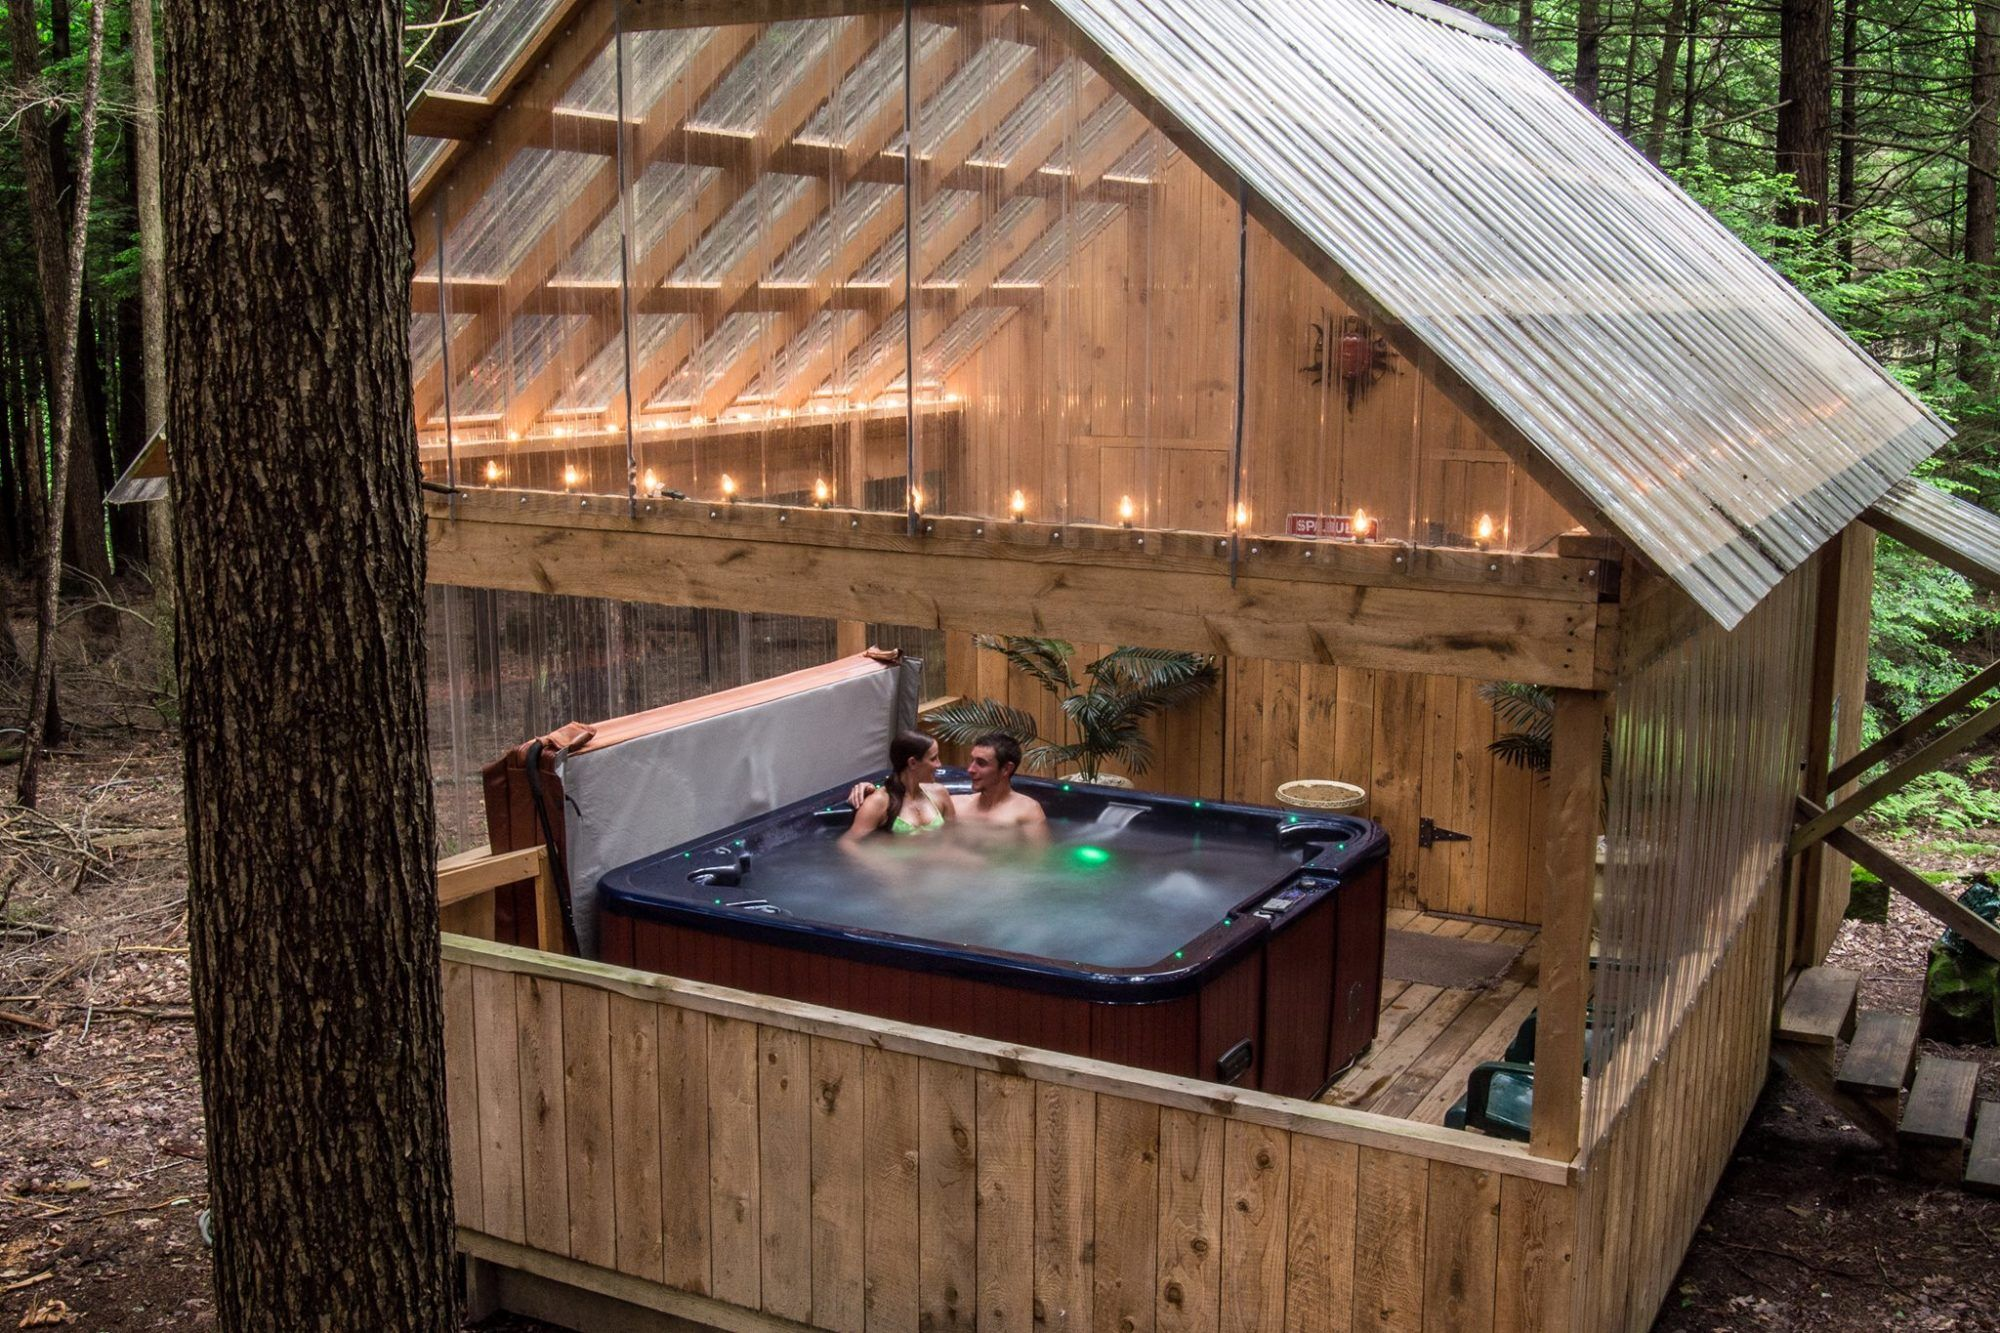 Hominy Ridge Lodge And Cabins In 2020 Cabin Hot Tub Getaway Cabins Romantic Cabin Getaway